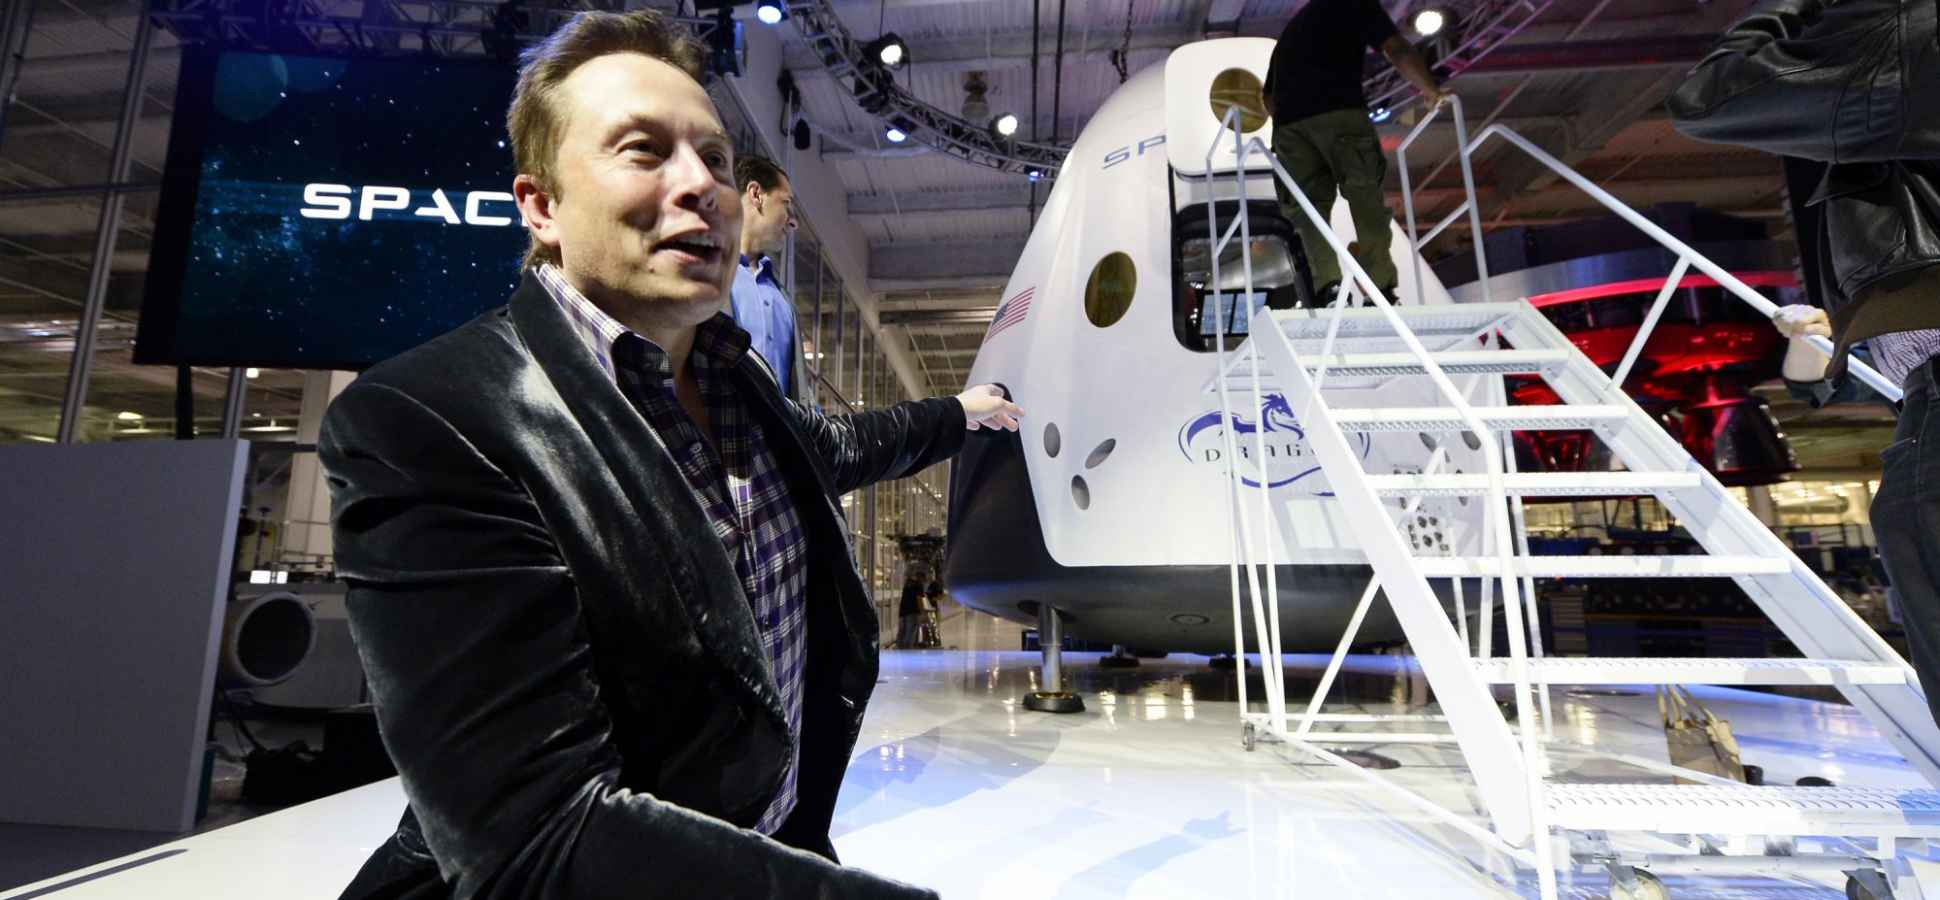 Why Elon Musk, Tony Robbins and Other Geniuses Tell Everyone Their Plans